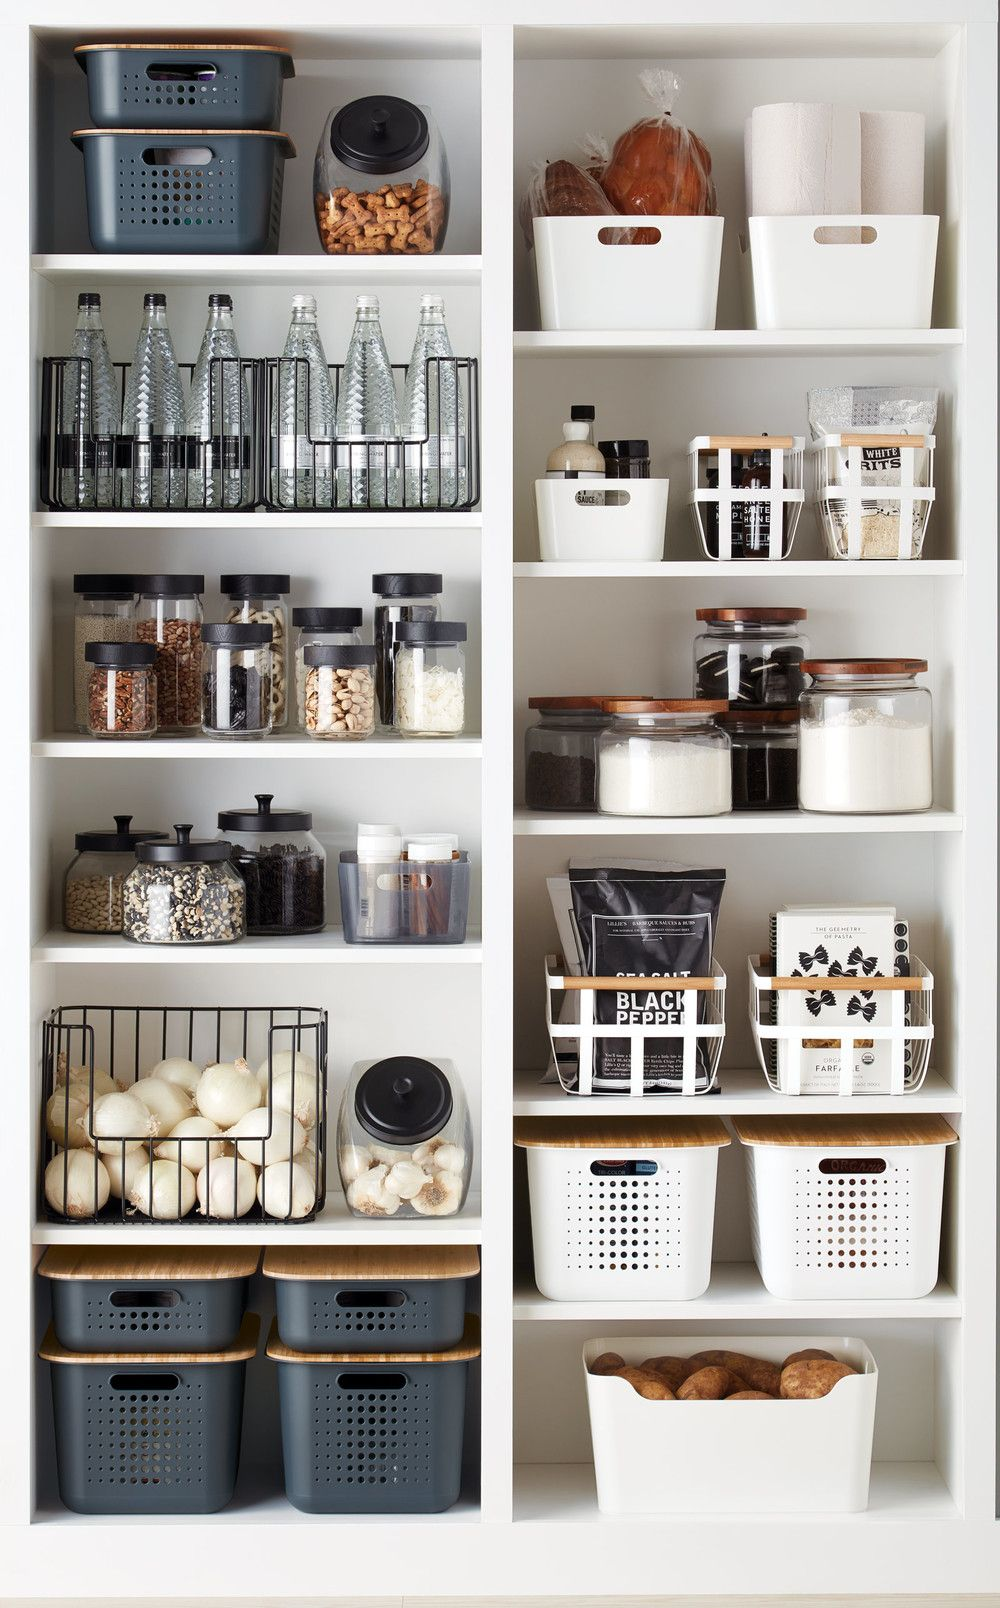 Get your pantry sorted Resolutions For Your Home In The New Year